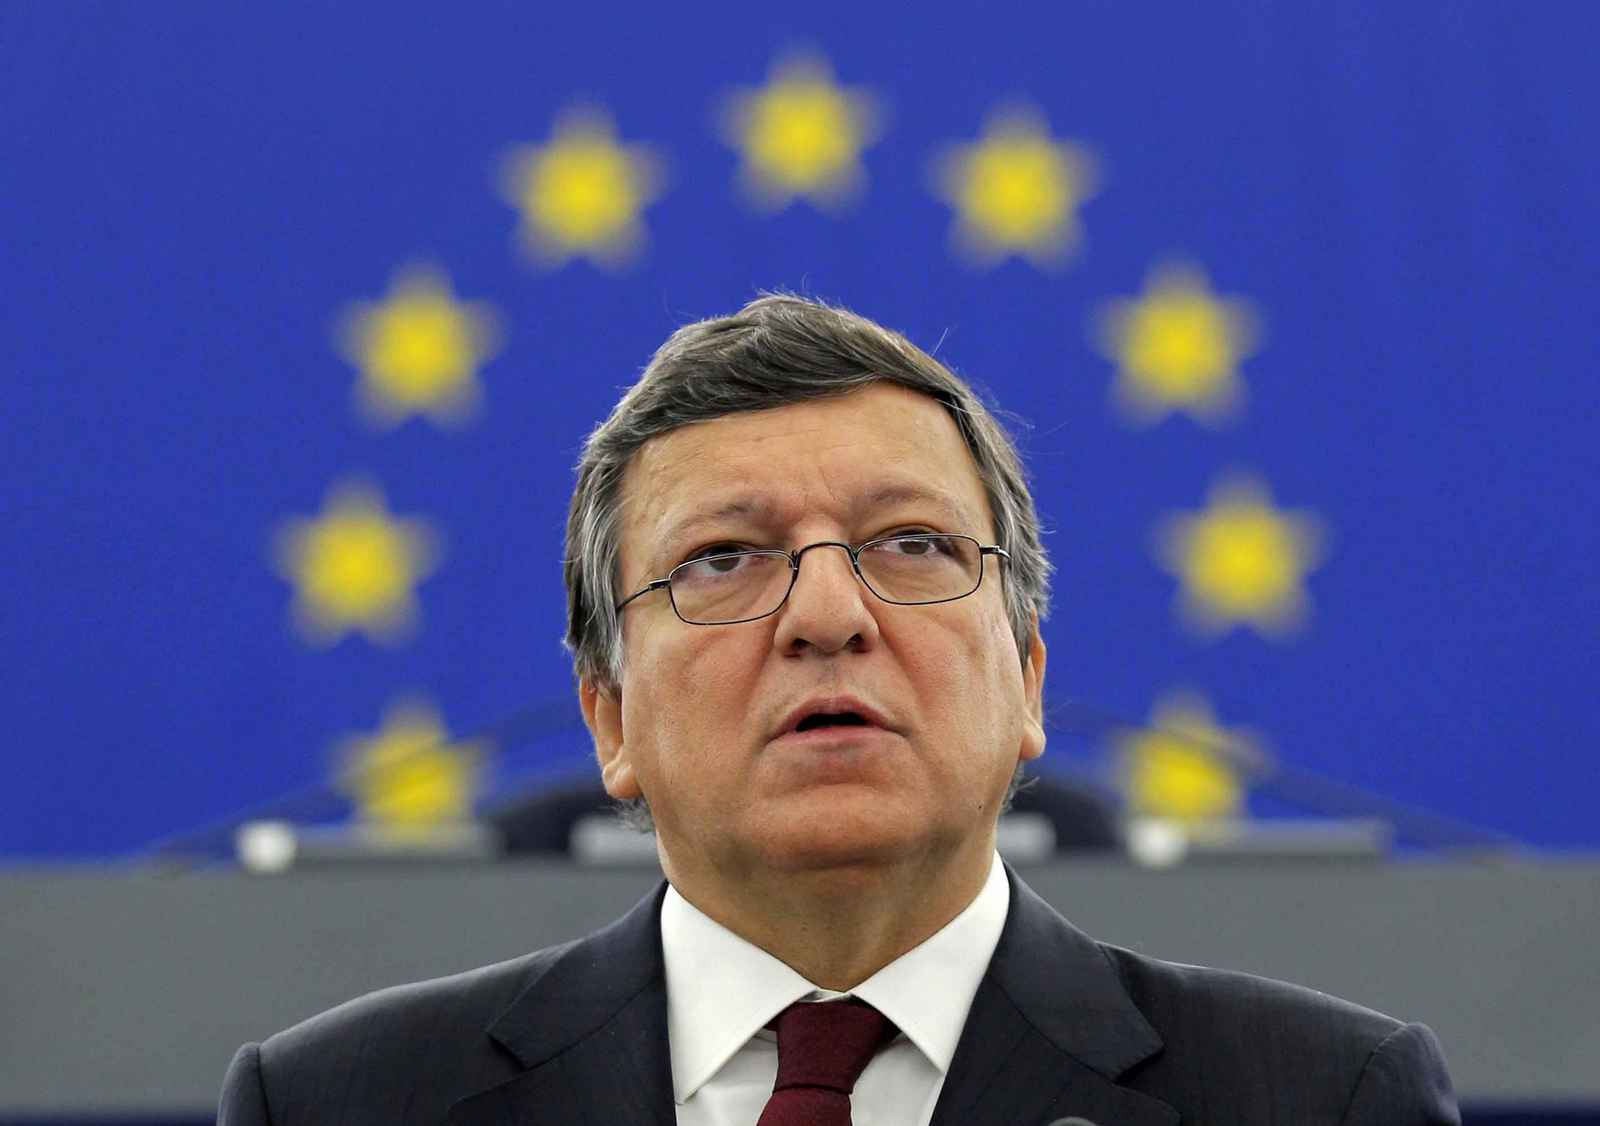 European Commission President Jose Manuel Barroso addresses the European Parliament during a debate on the state of the EU in Strasbourg September 28, 2011. REUTERS/Vincent Kessler (FRANCE - Tags: POLITICS HEADSHOT) ORG XMIT: VAK02